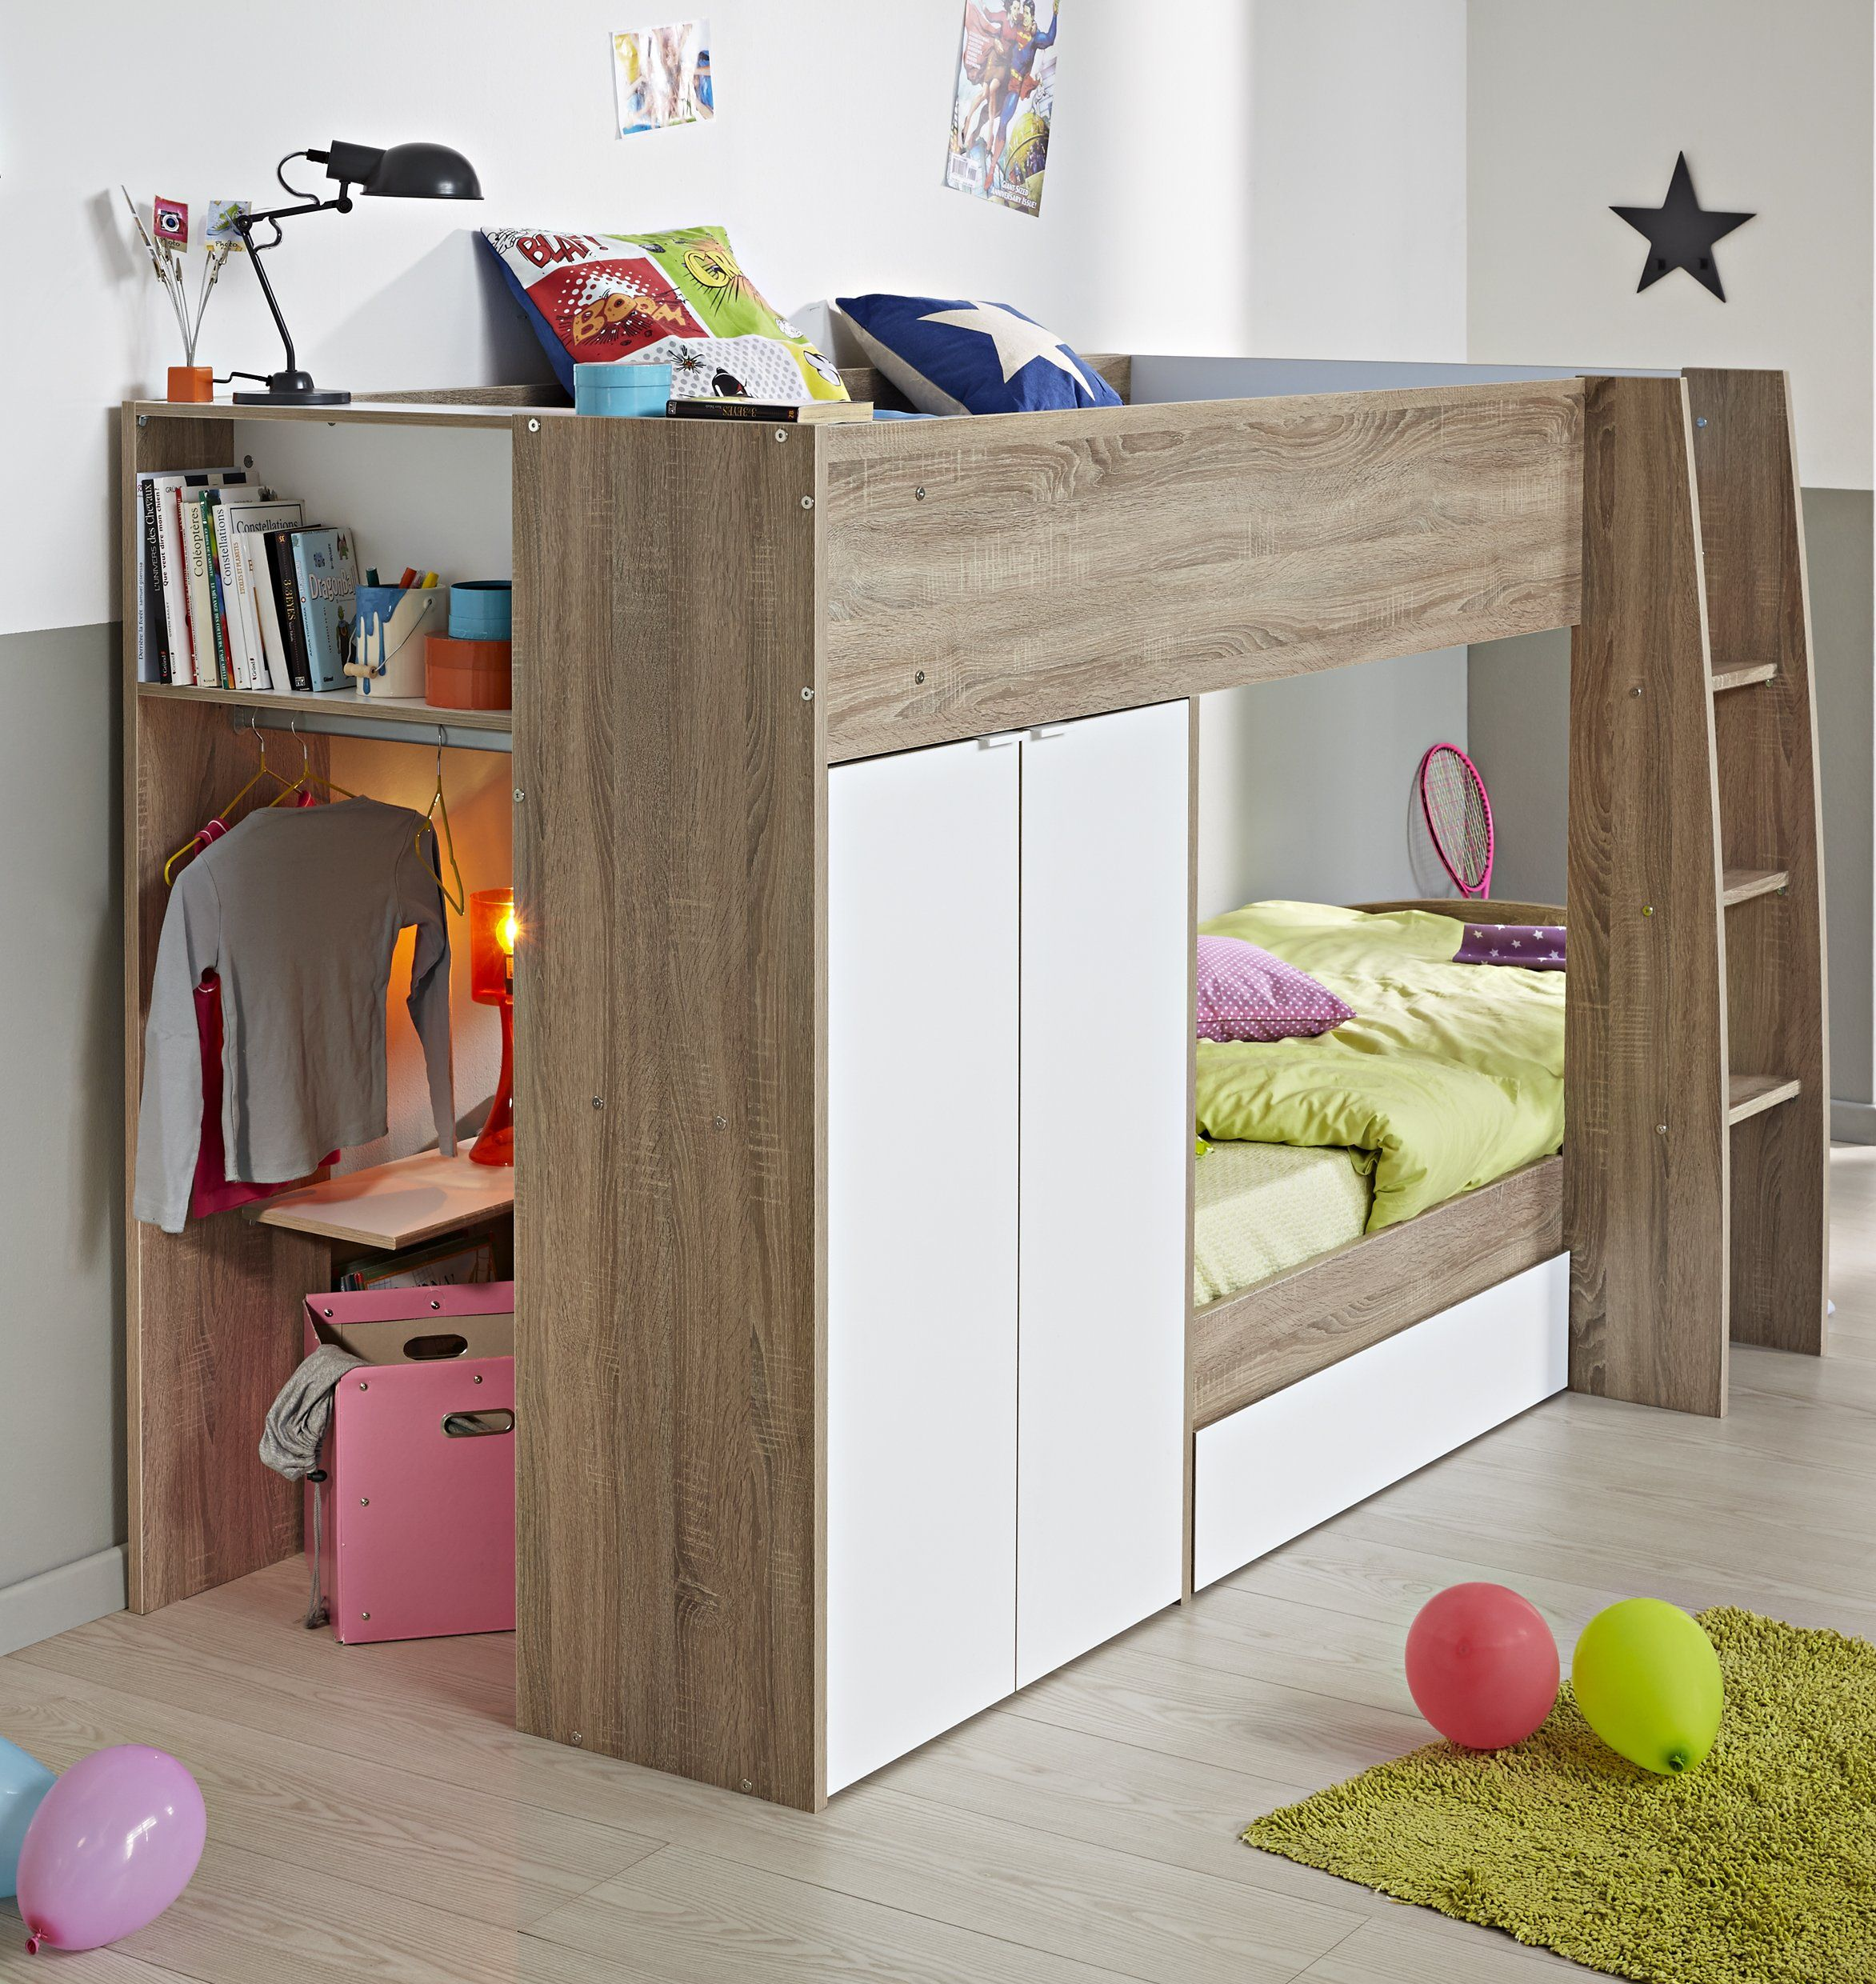 pictures for kids bedrooms cool kids bedroom bedrooms - Ikea Shared Kids Room